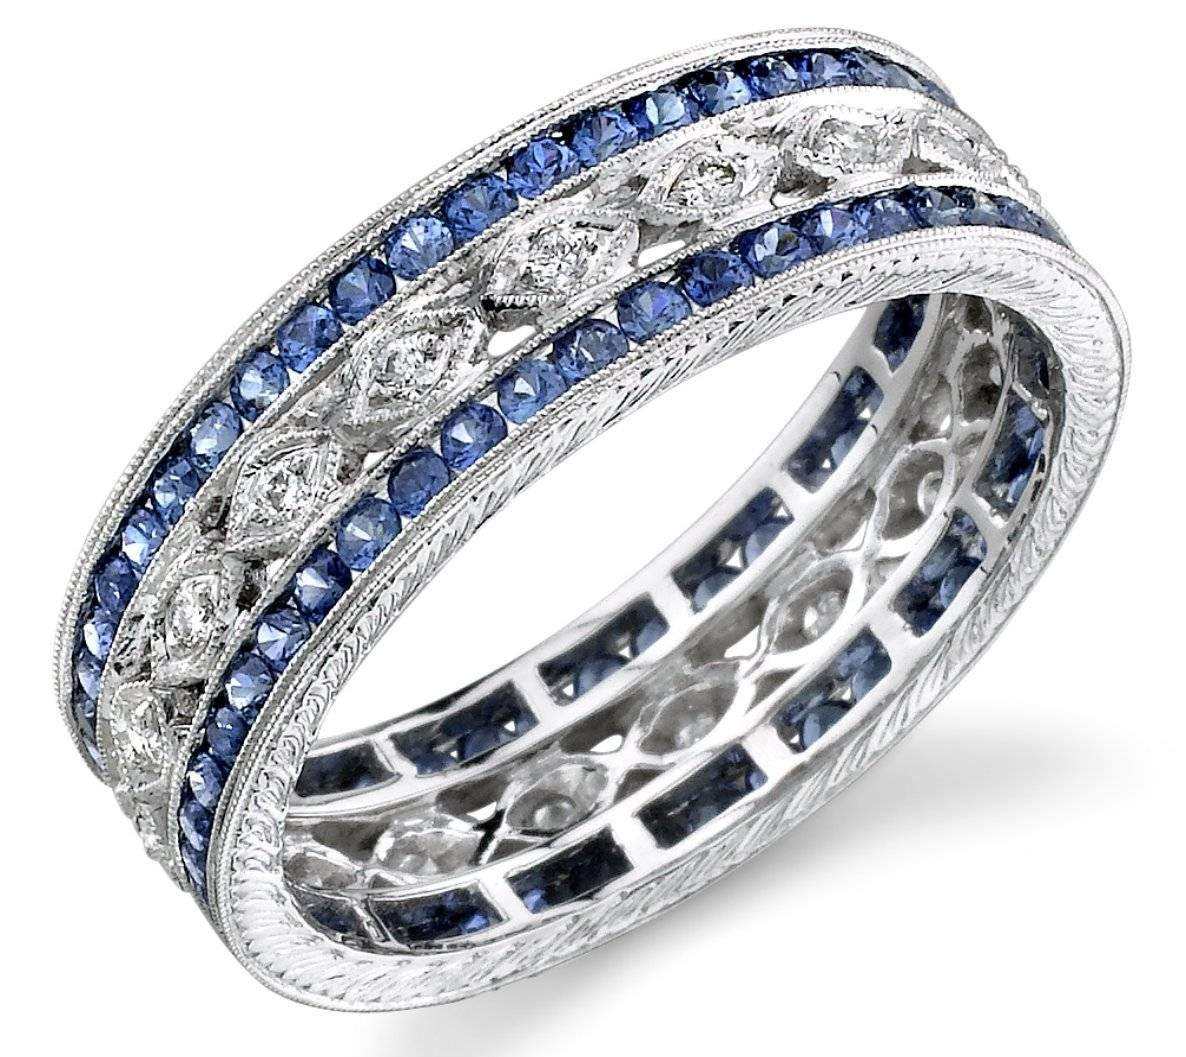 Free Diamond Rings. Sapphire And Diamond Wedding Rings: Sapphire With Regard To Sapphire Engagement Rings With Wedding Band (Gallery 9 of 15)